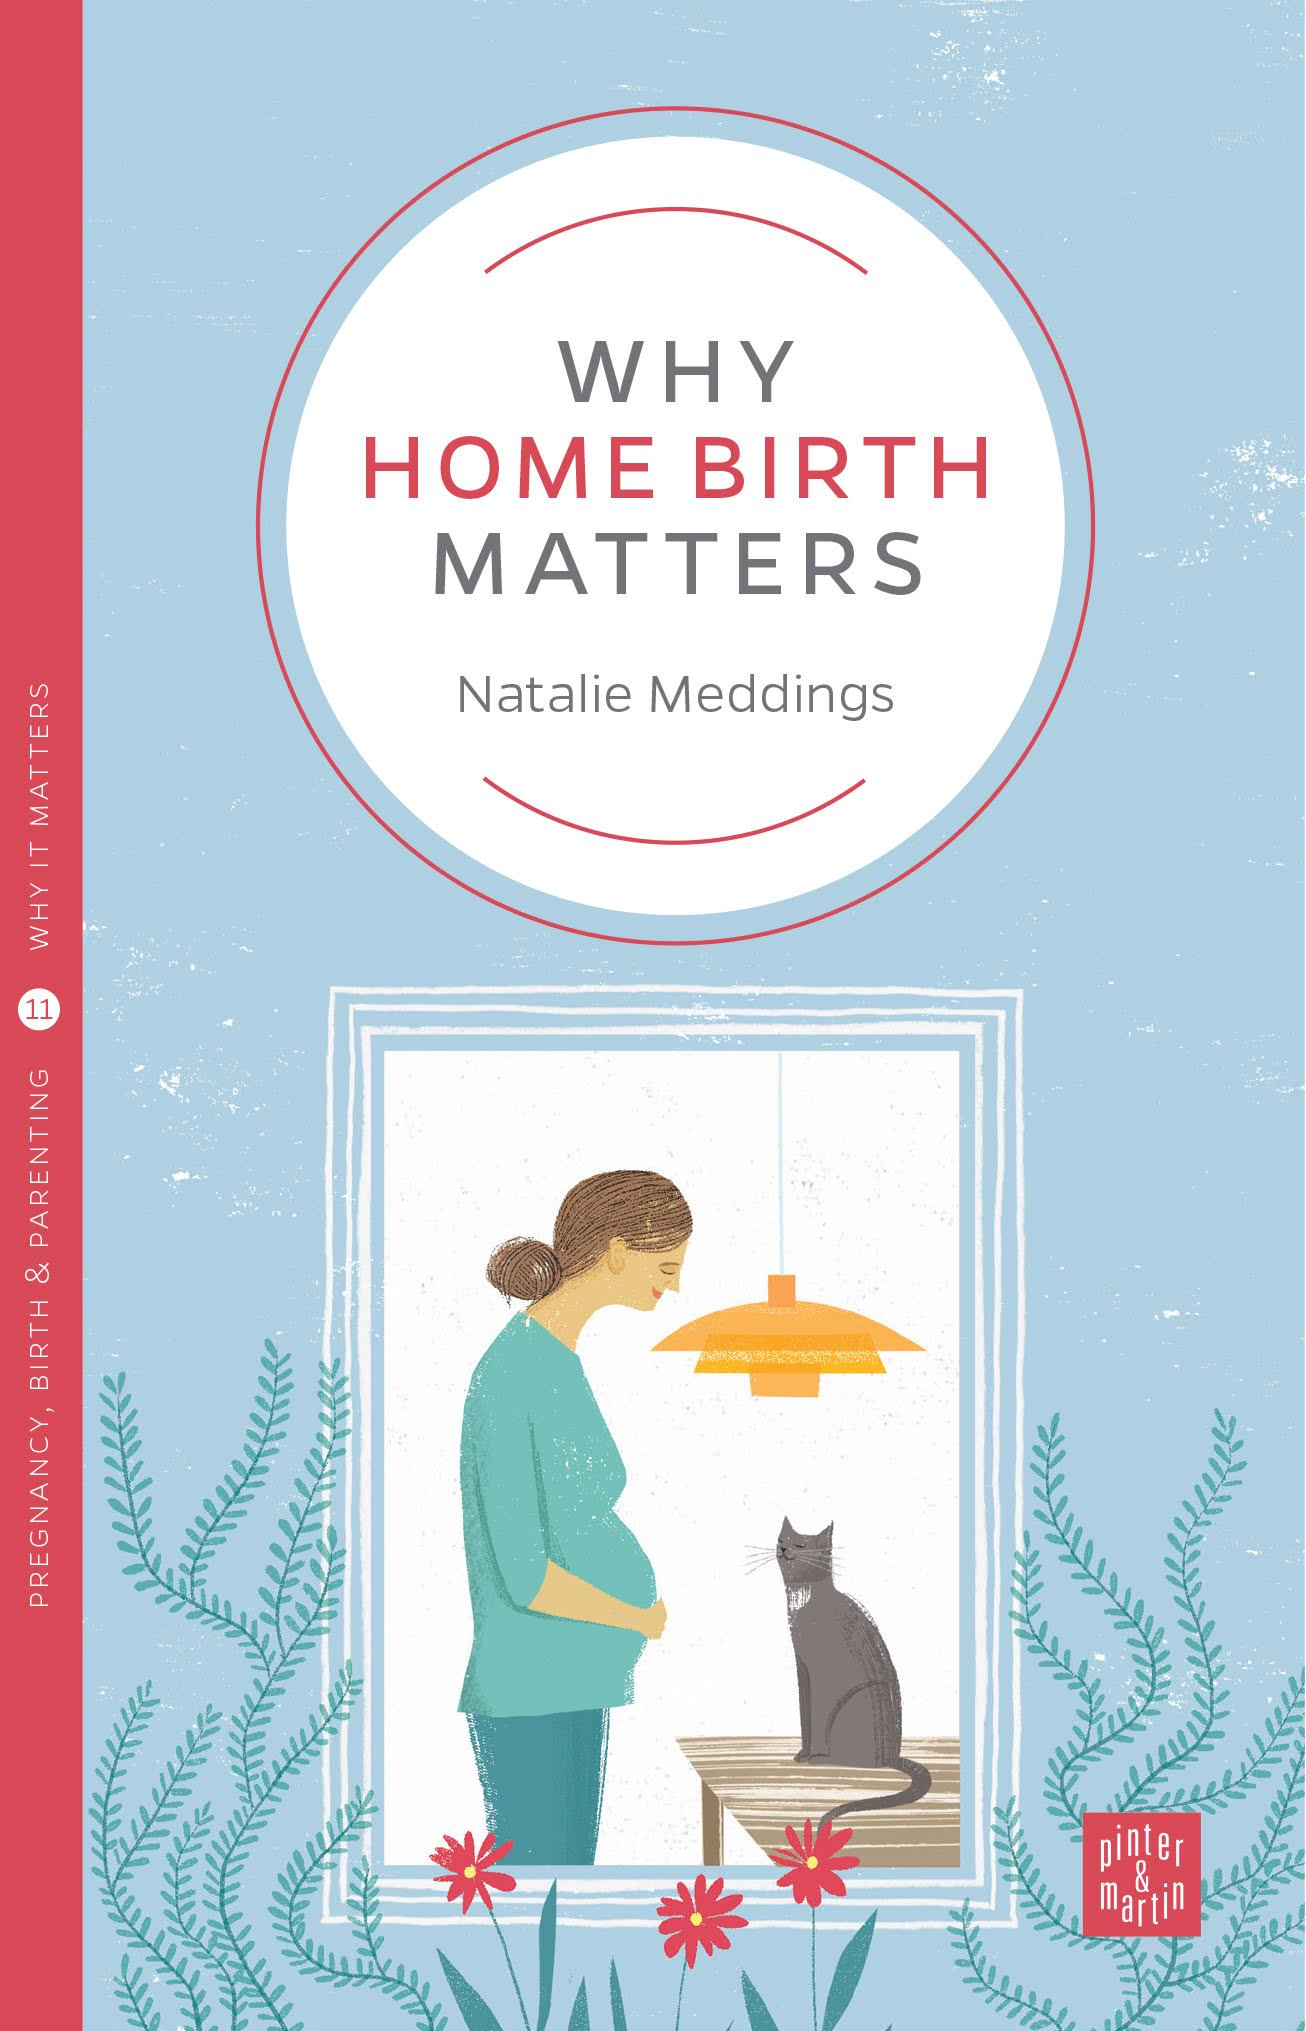 Homebirth book healthista Natalie Meddings Why Home Birth Matters jacket high res